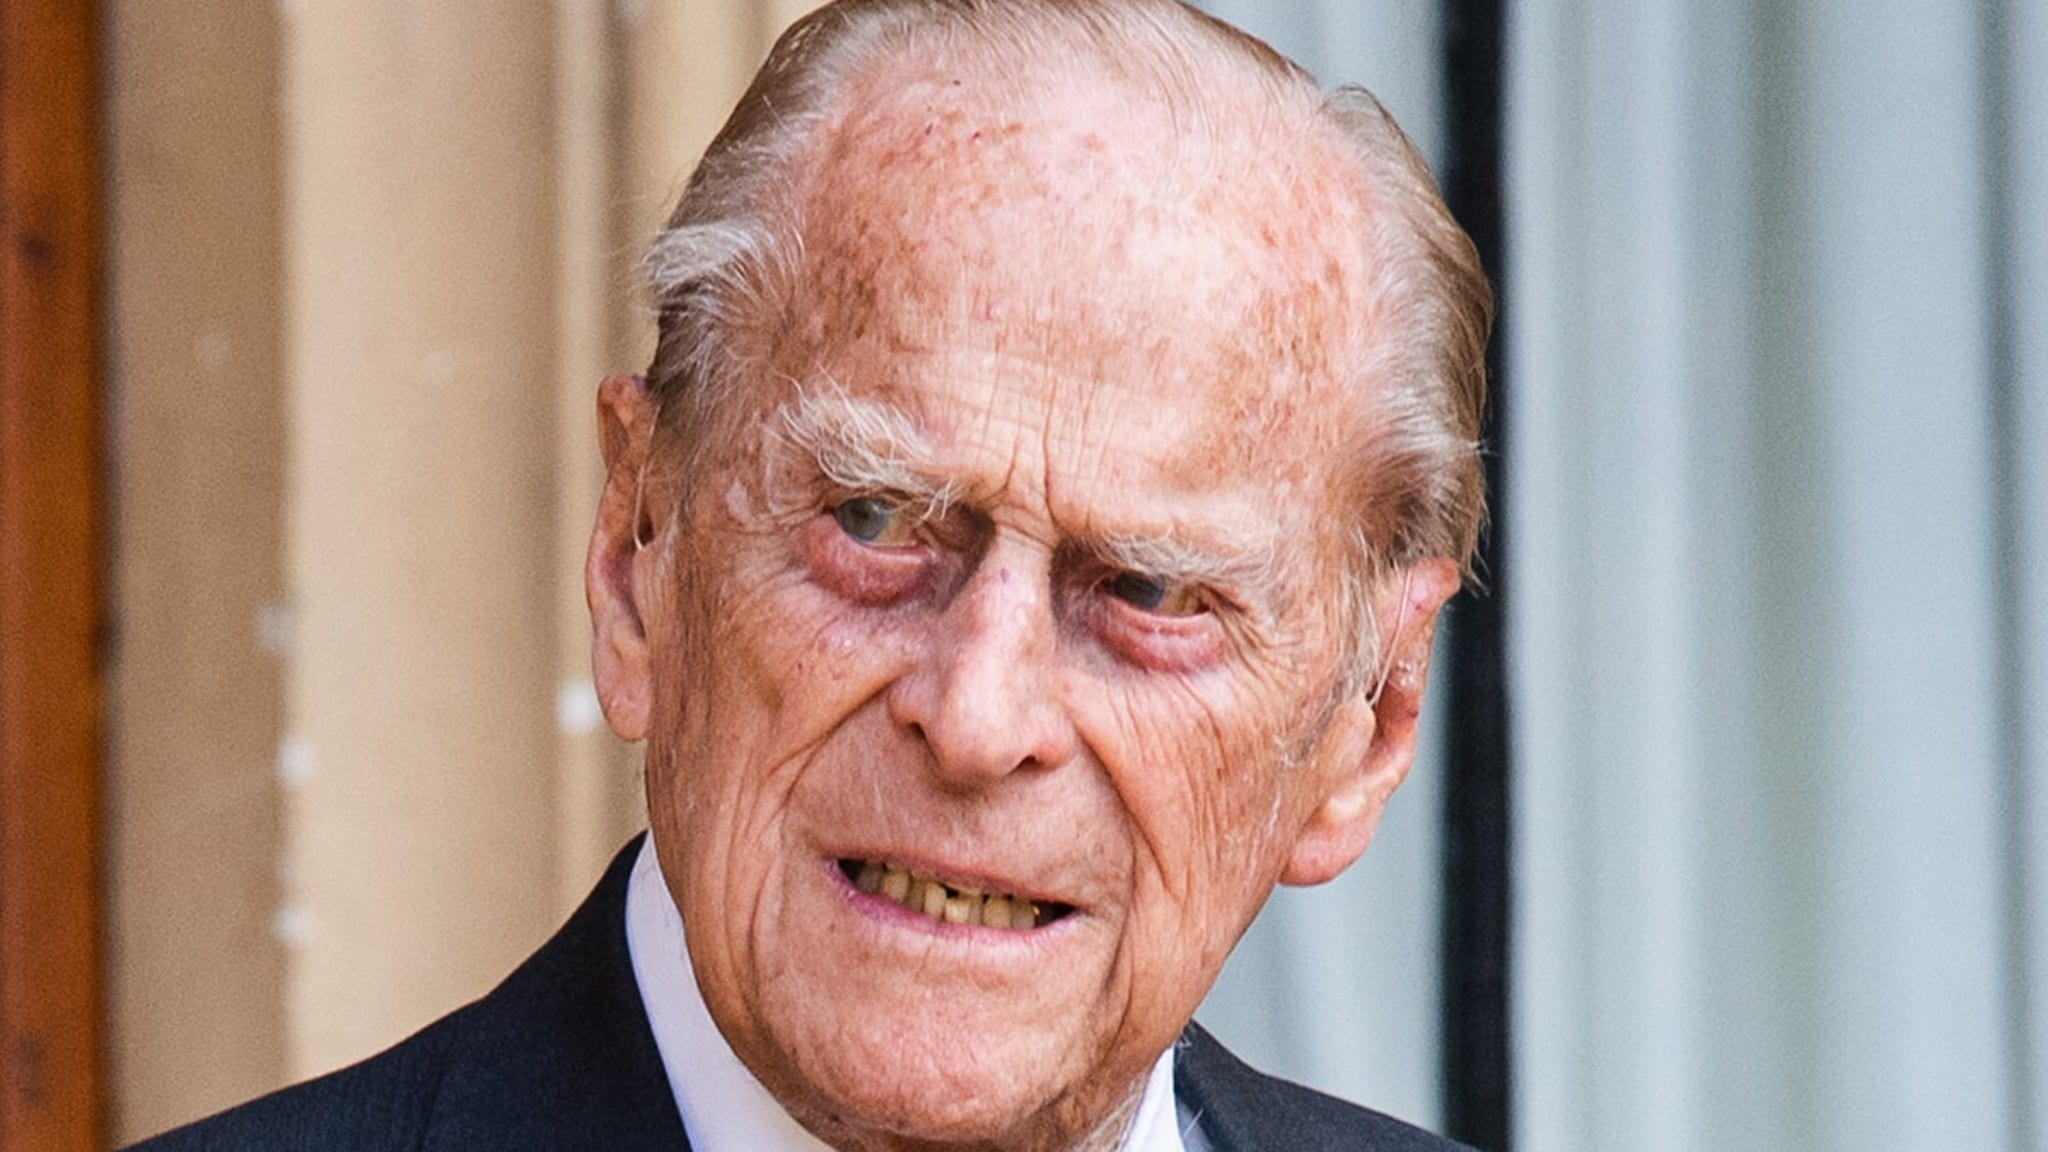 Prince Philip lying down to rest at the royal funeral, watch the live broadcast